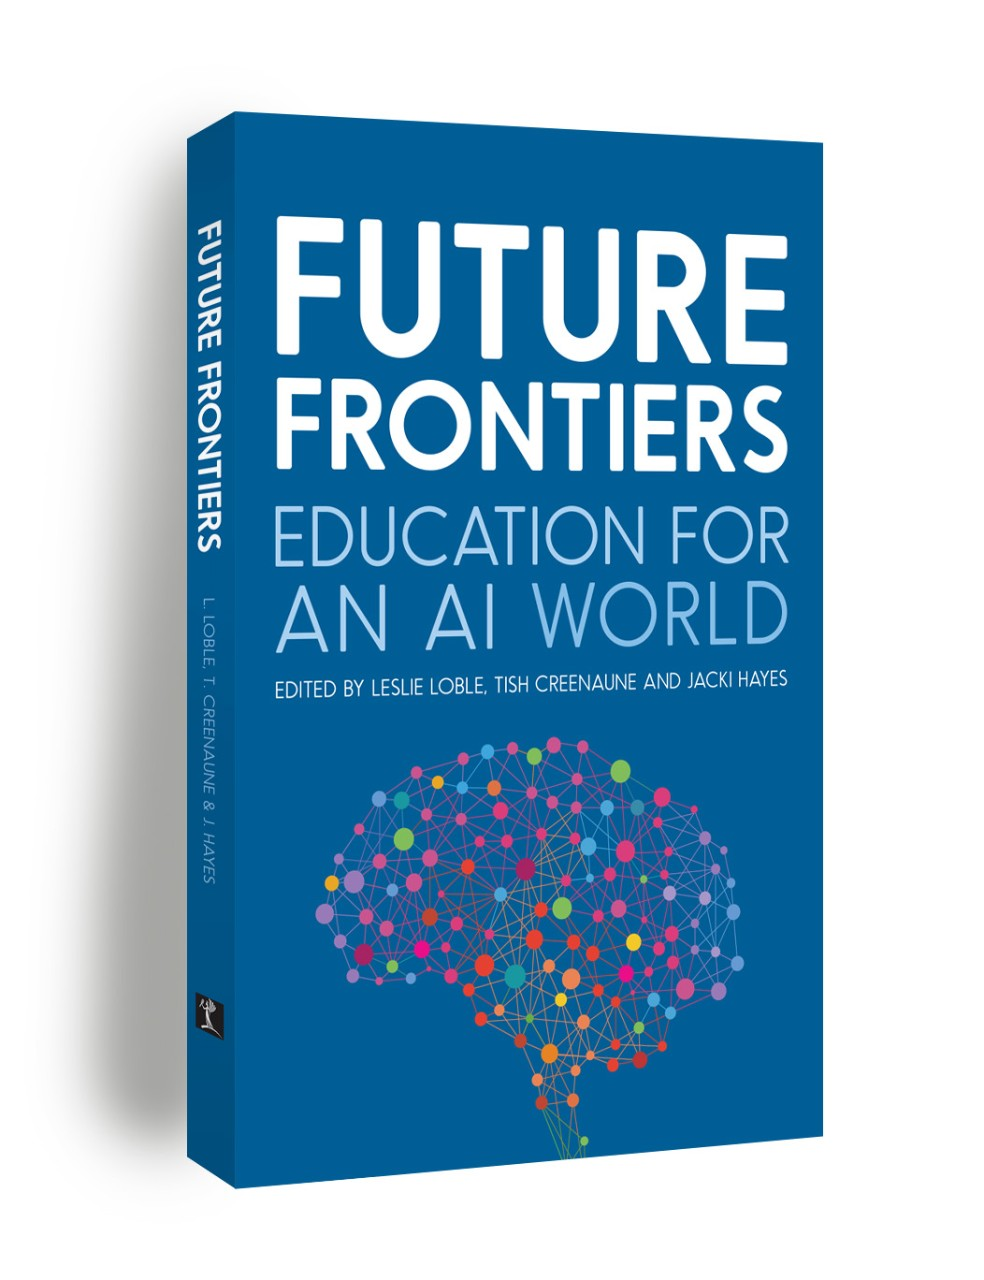 Book cover - Future Frontiers: Education for an AI World